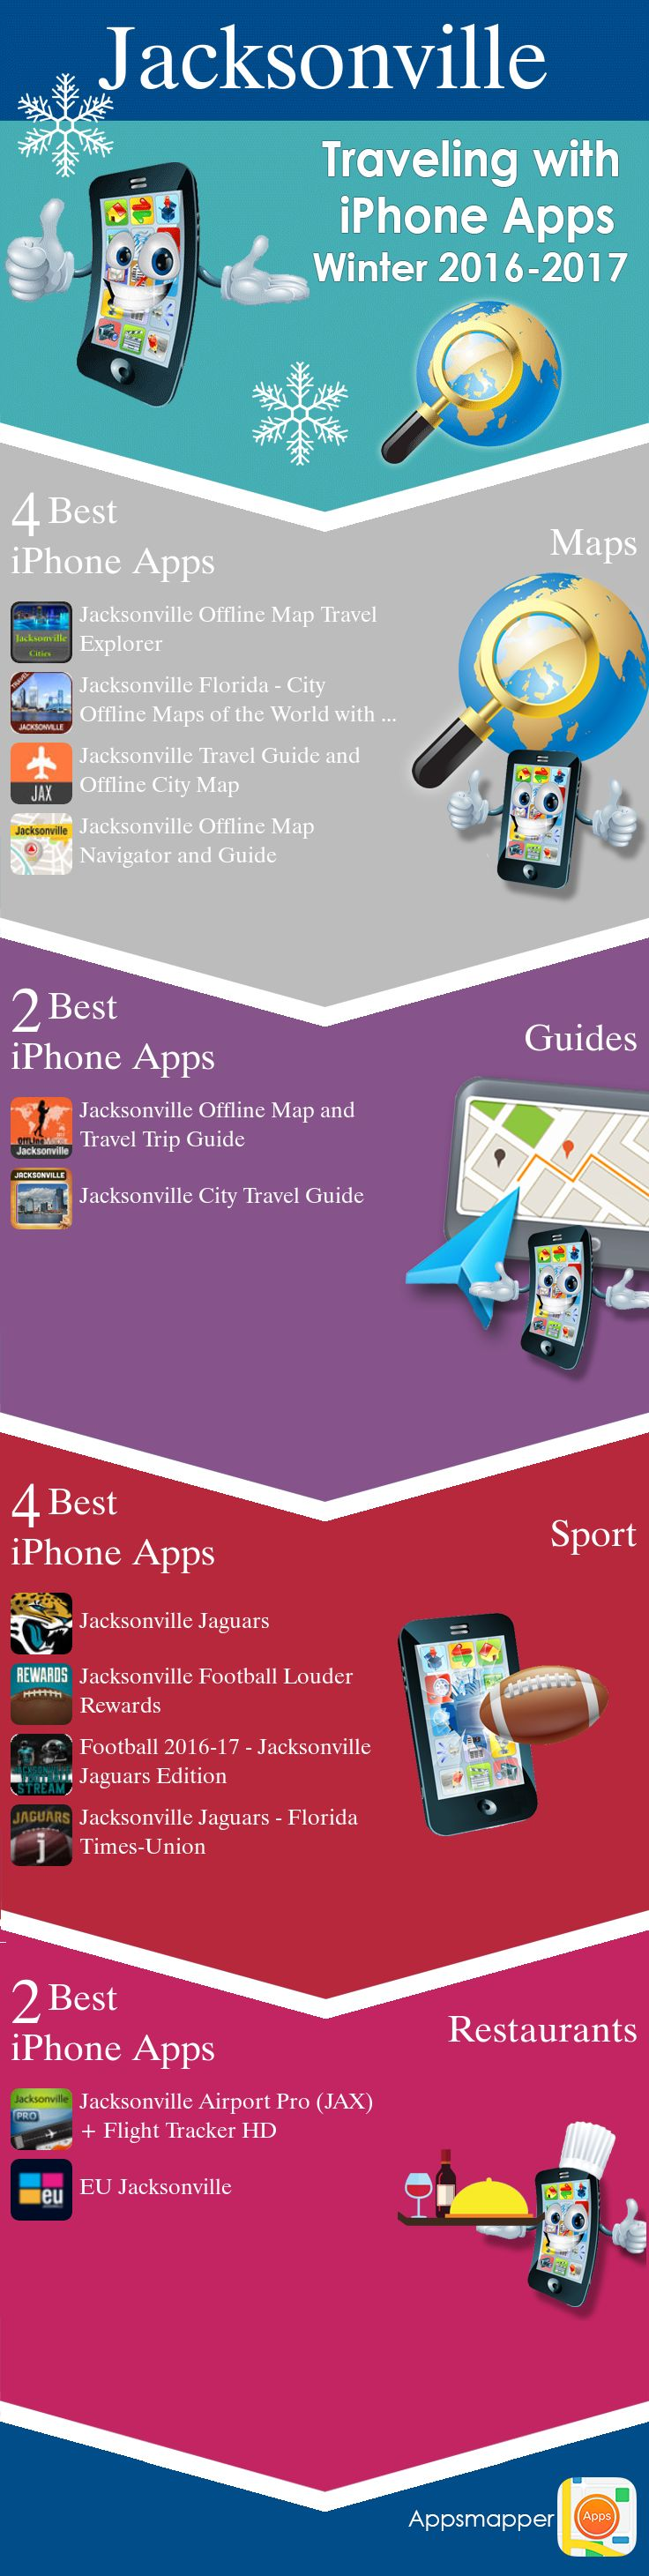 Jacksonville iPhone apps: Travel Guides, Maps, Transportation, Biking, Museums, Parking, Sport and apps for Students.